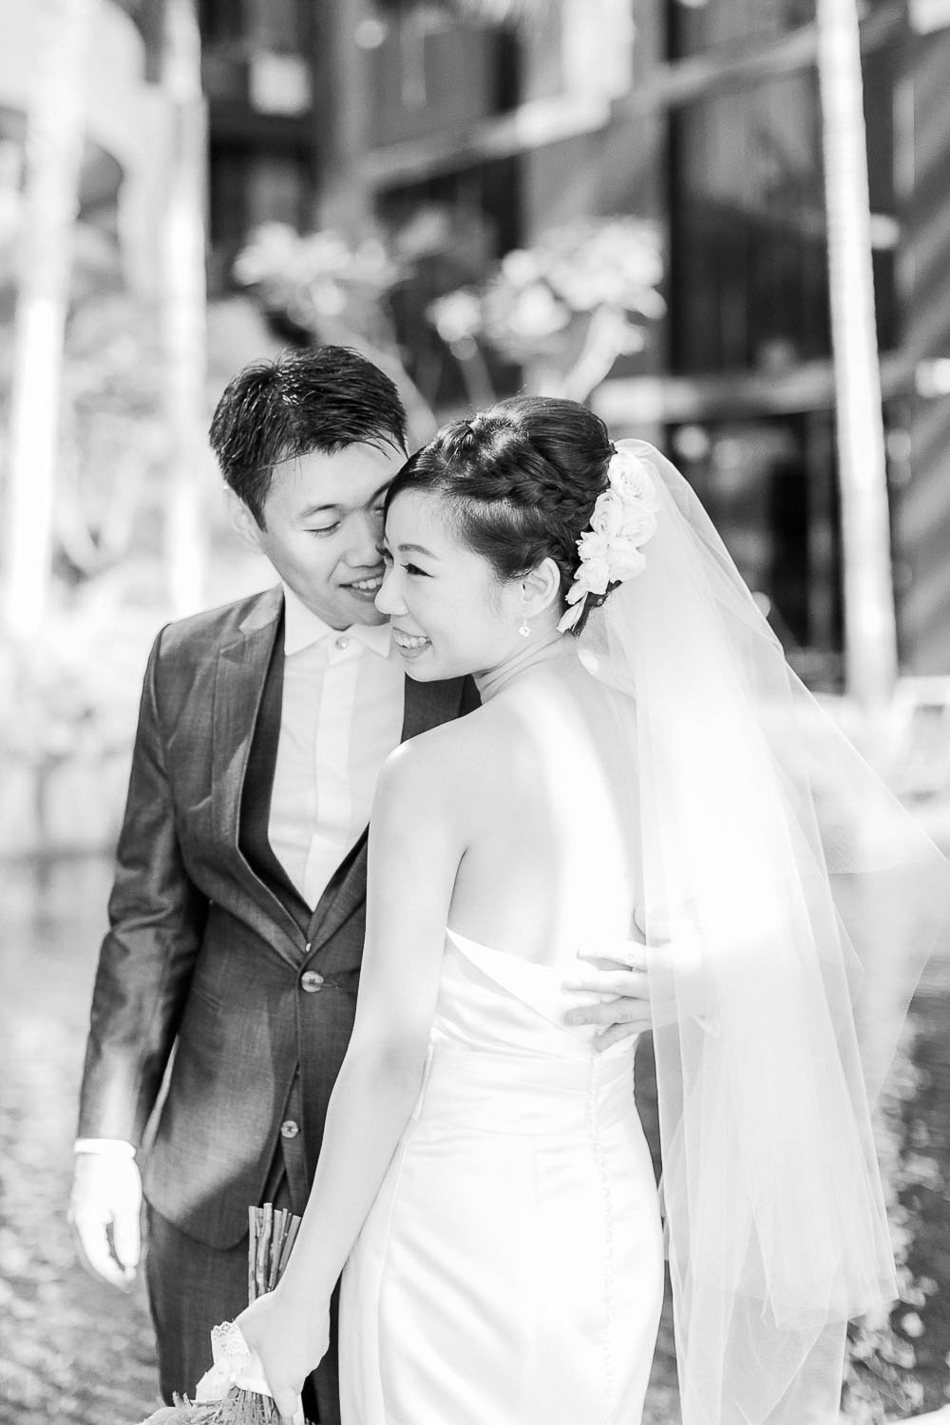 wedding-photographer-singapore-film-photographer-chen-sands-MinKang-wedding-CSPBLOG-4.jpg